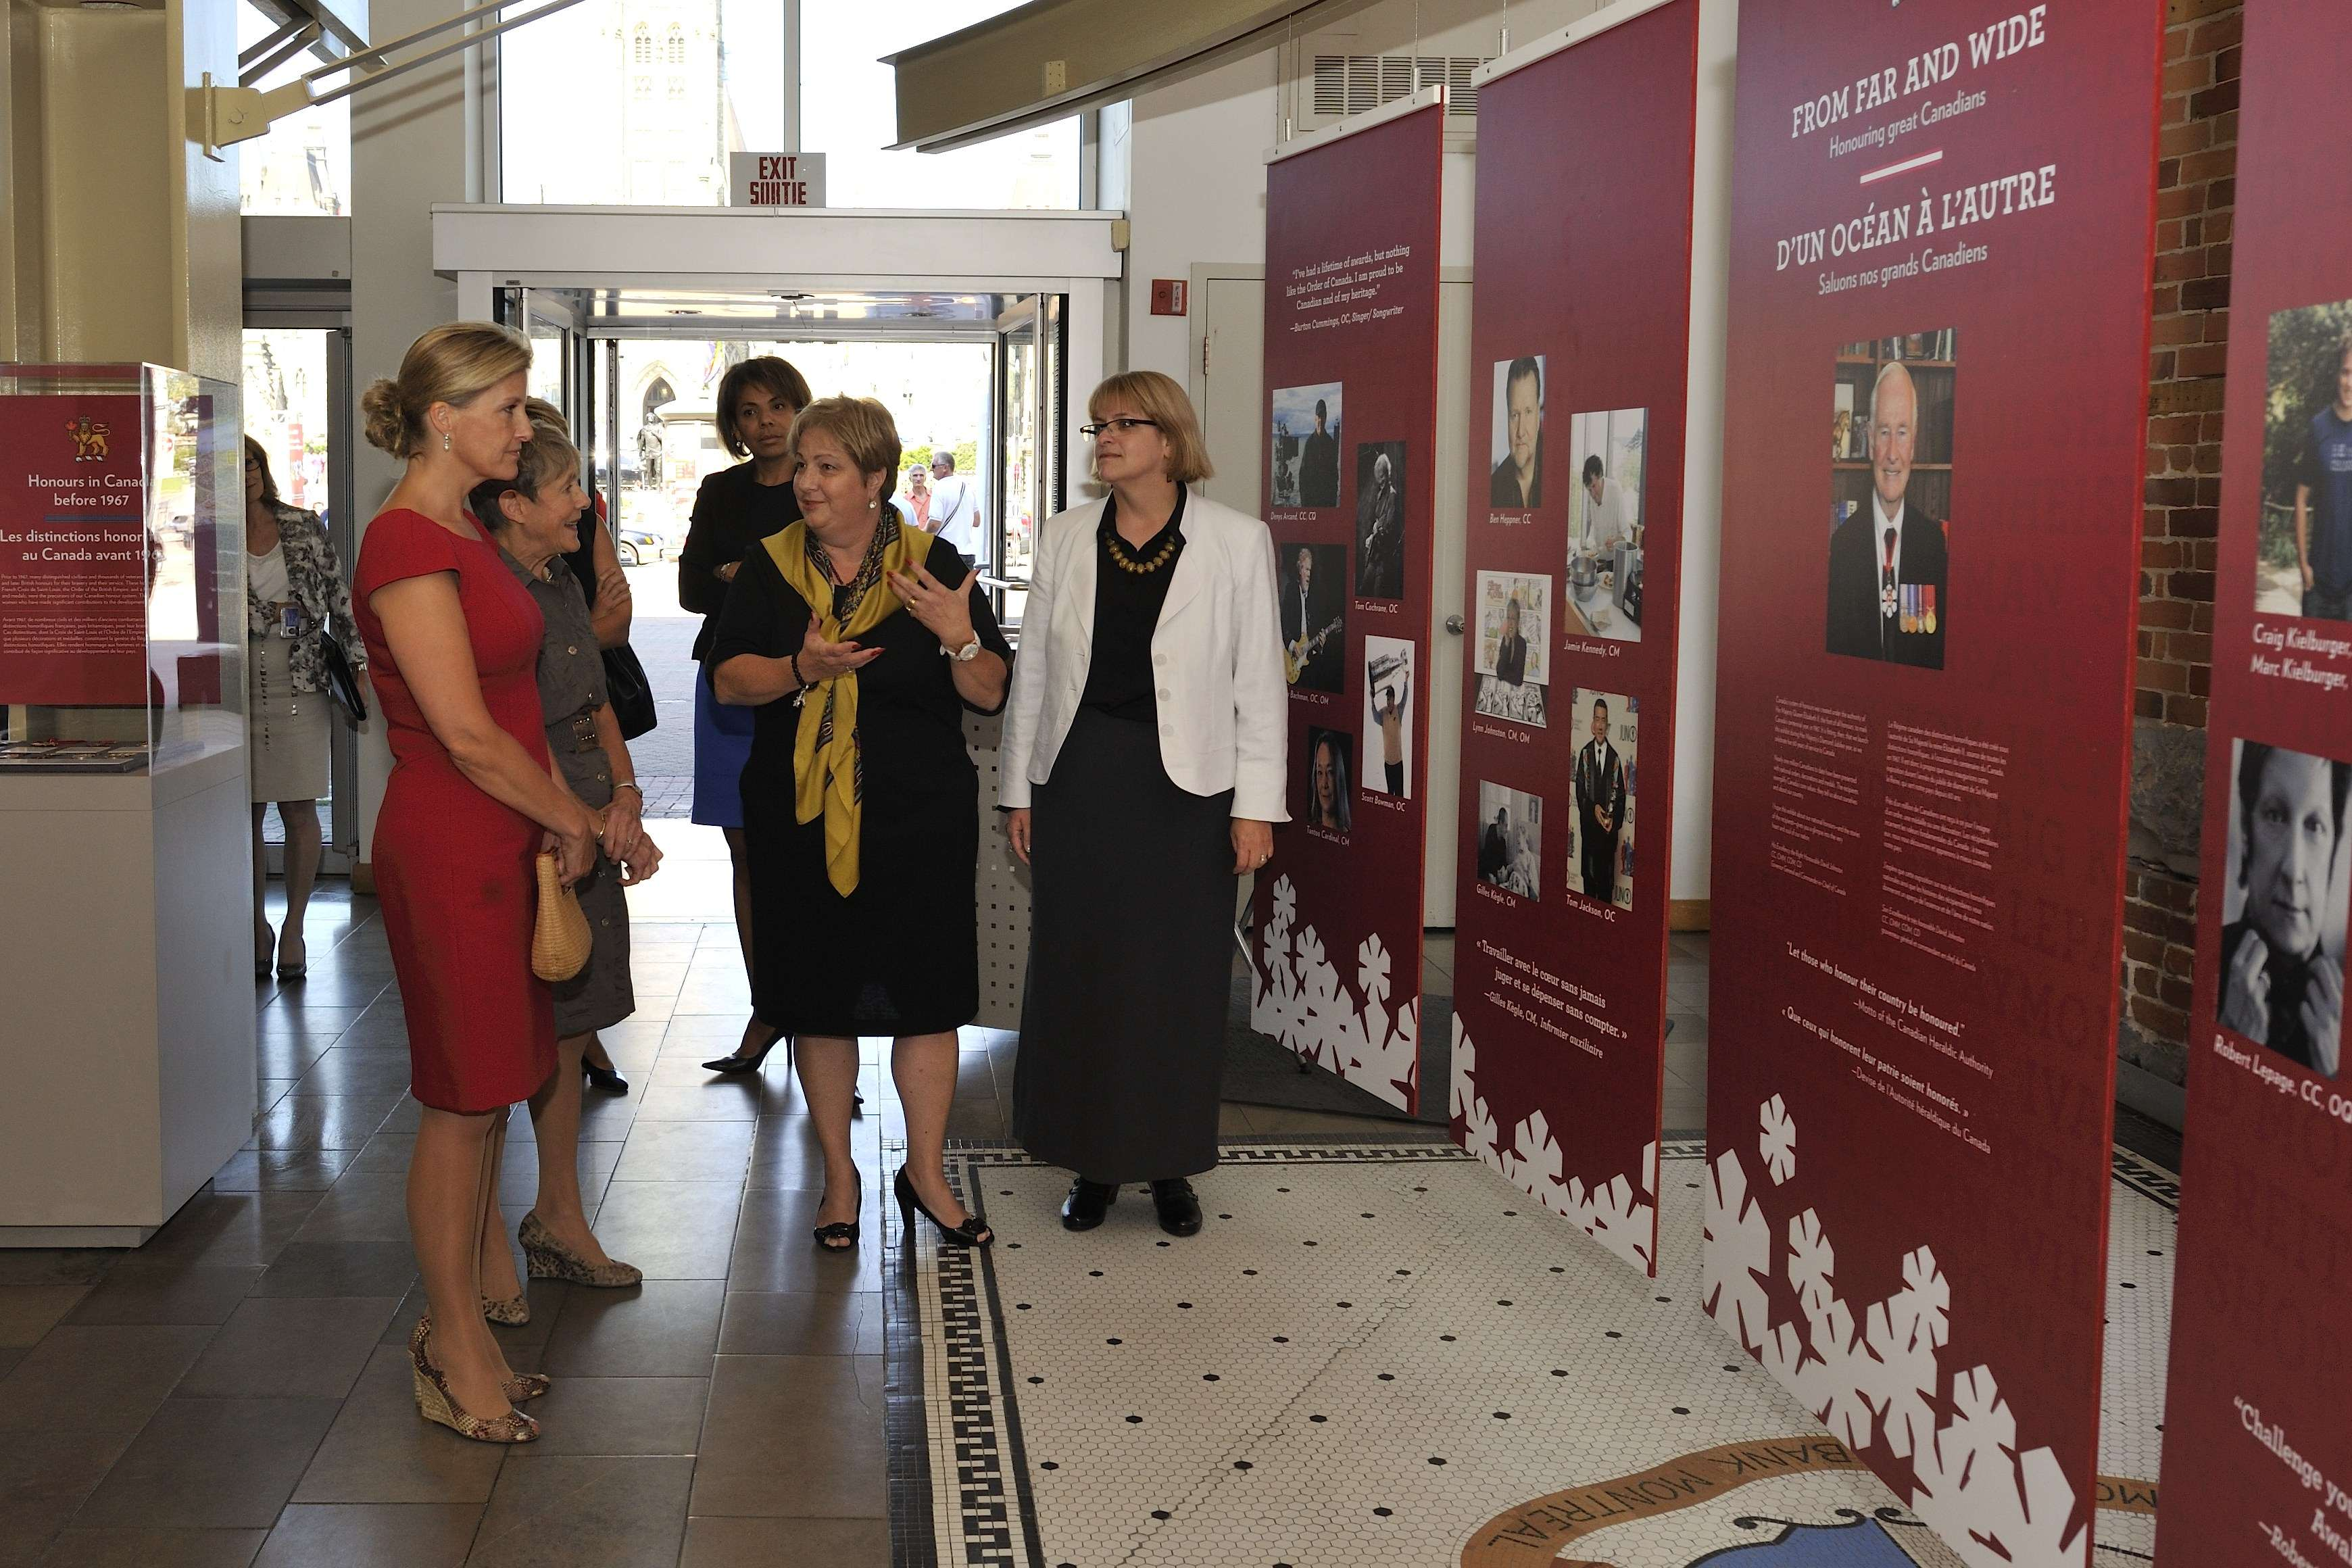 Her Excellency then accompanied Her Royal Highness for a tour of the exhibit From Far and Wide – Honouring Great Canadians. This exhibit about Canada's national honours  showcases stories of exceptional Canadians who have been recognized with the Order of Canada, Decorations for Bravery, Military Valour Decorations and other national honours.